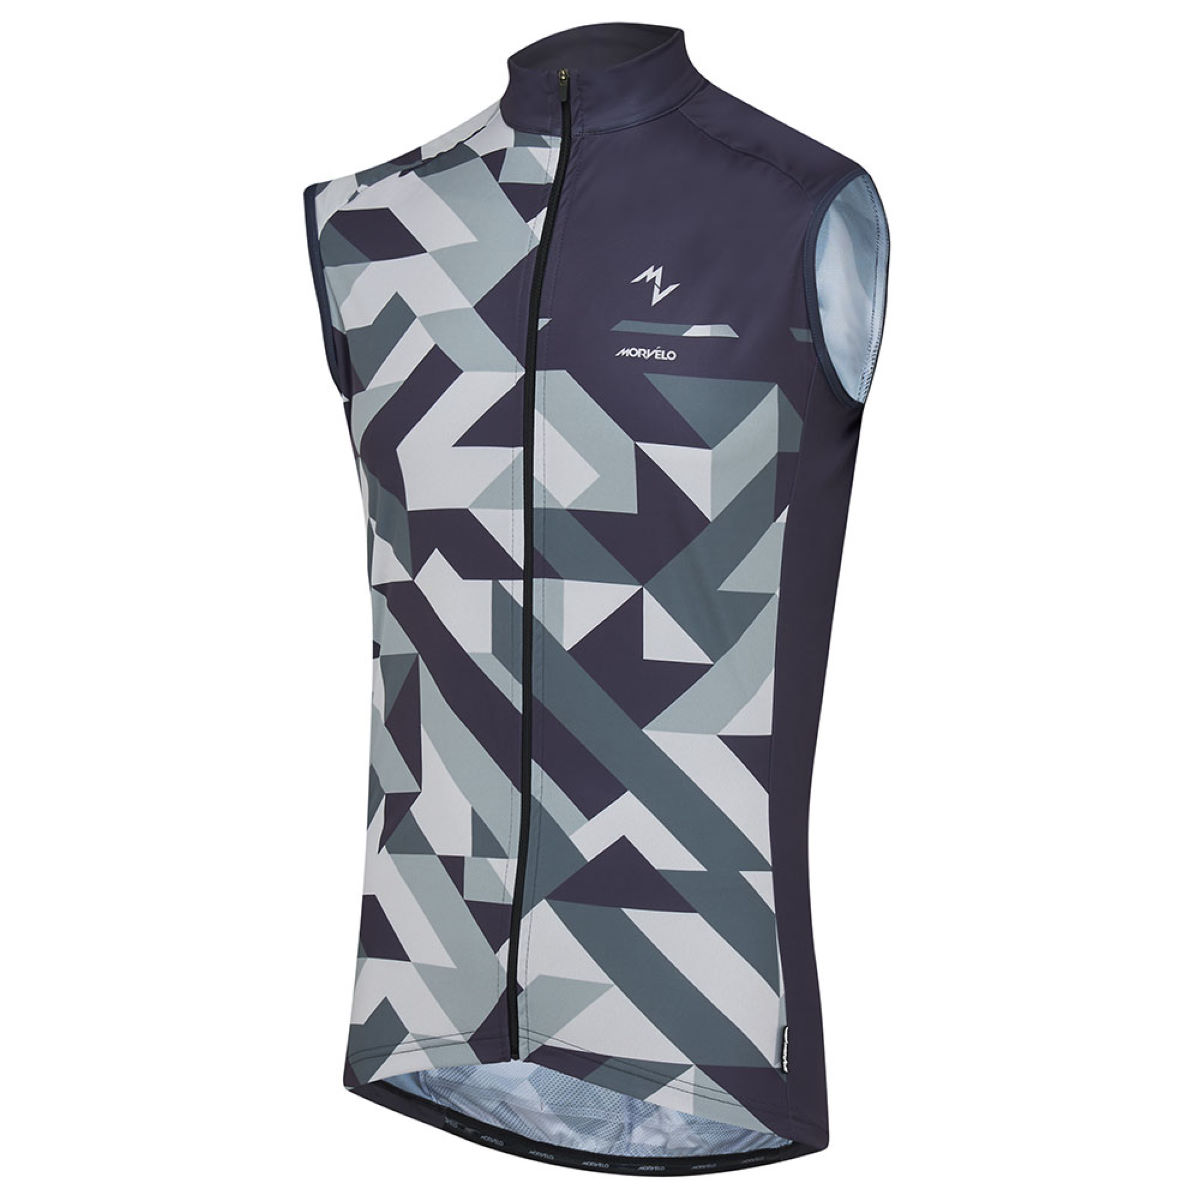 Gilet VTT Morvelo Winter Attack Covert (sans manches) - XS Winter Attack Gilets vélo